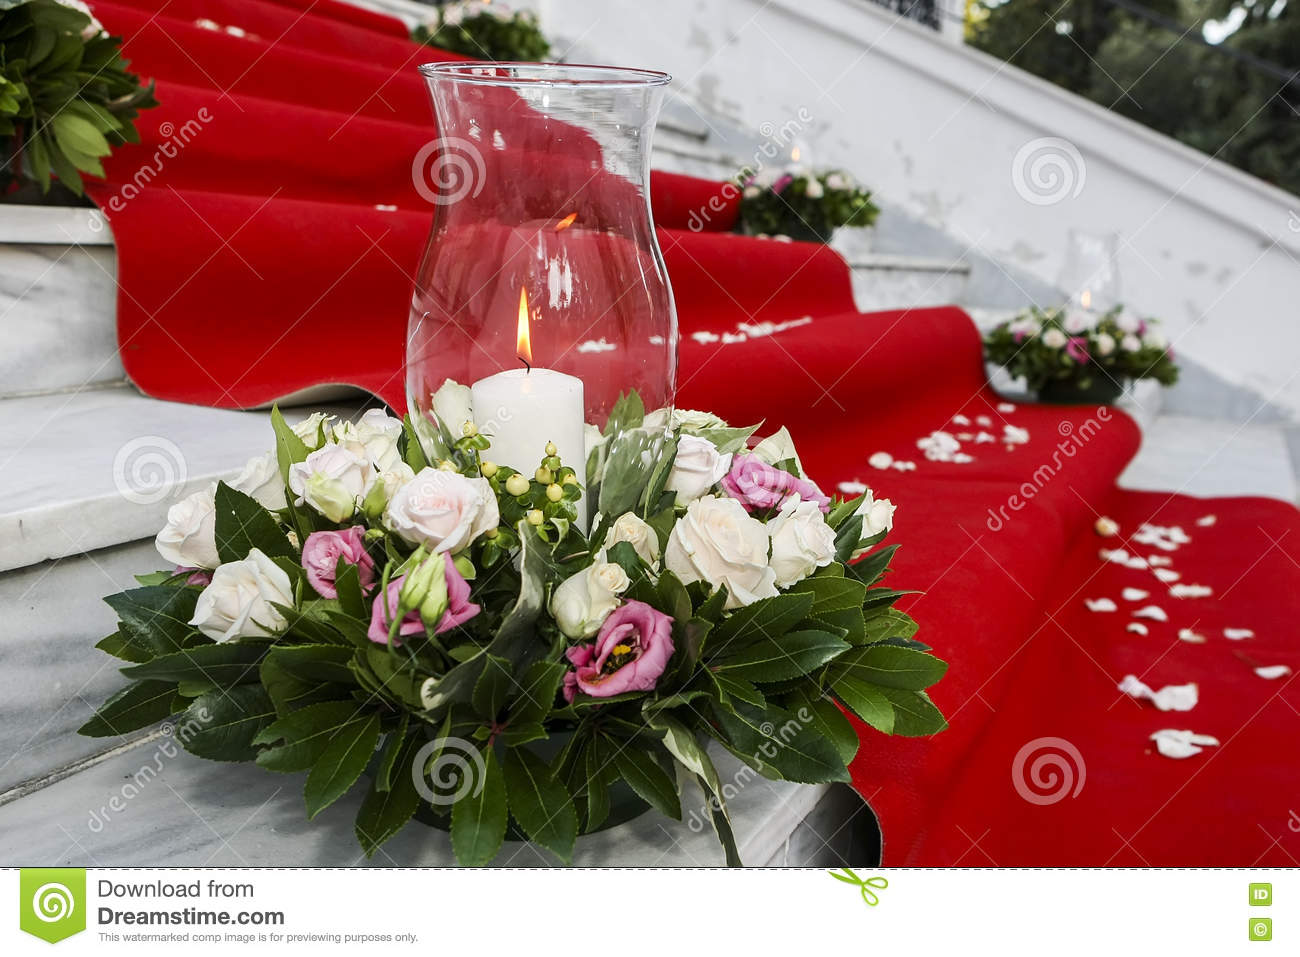 Wedding Red Carpet With White Candles In Church Stairs Stock Photo